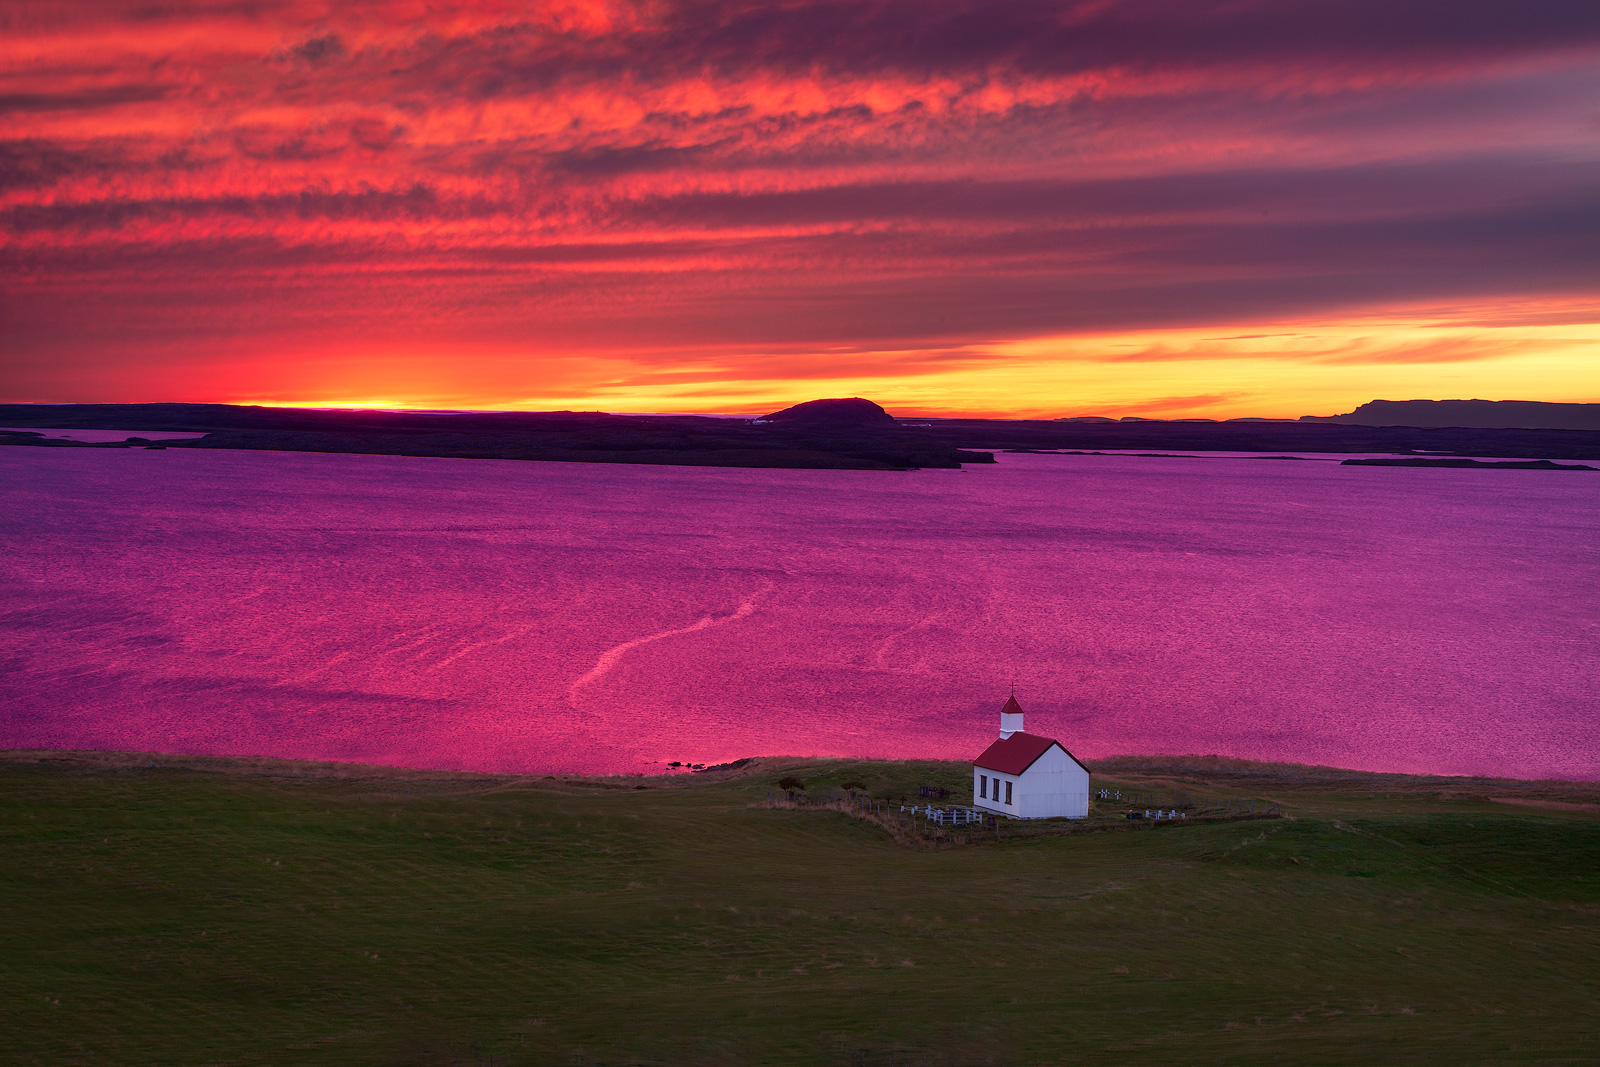 Red and white church over a lake turned purple at sunset